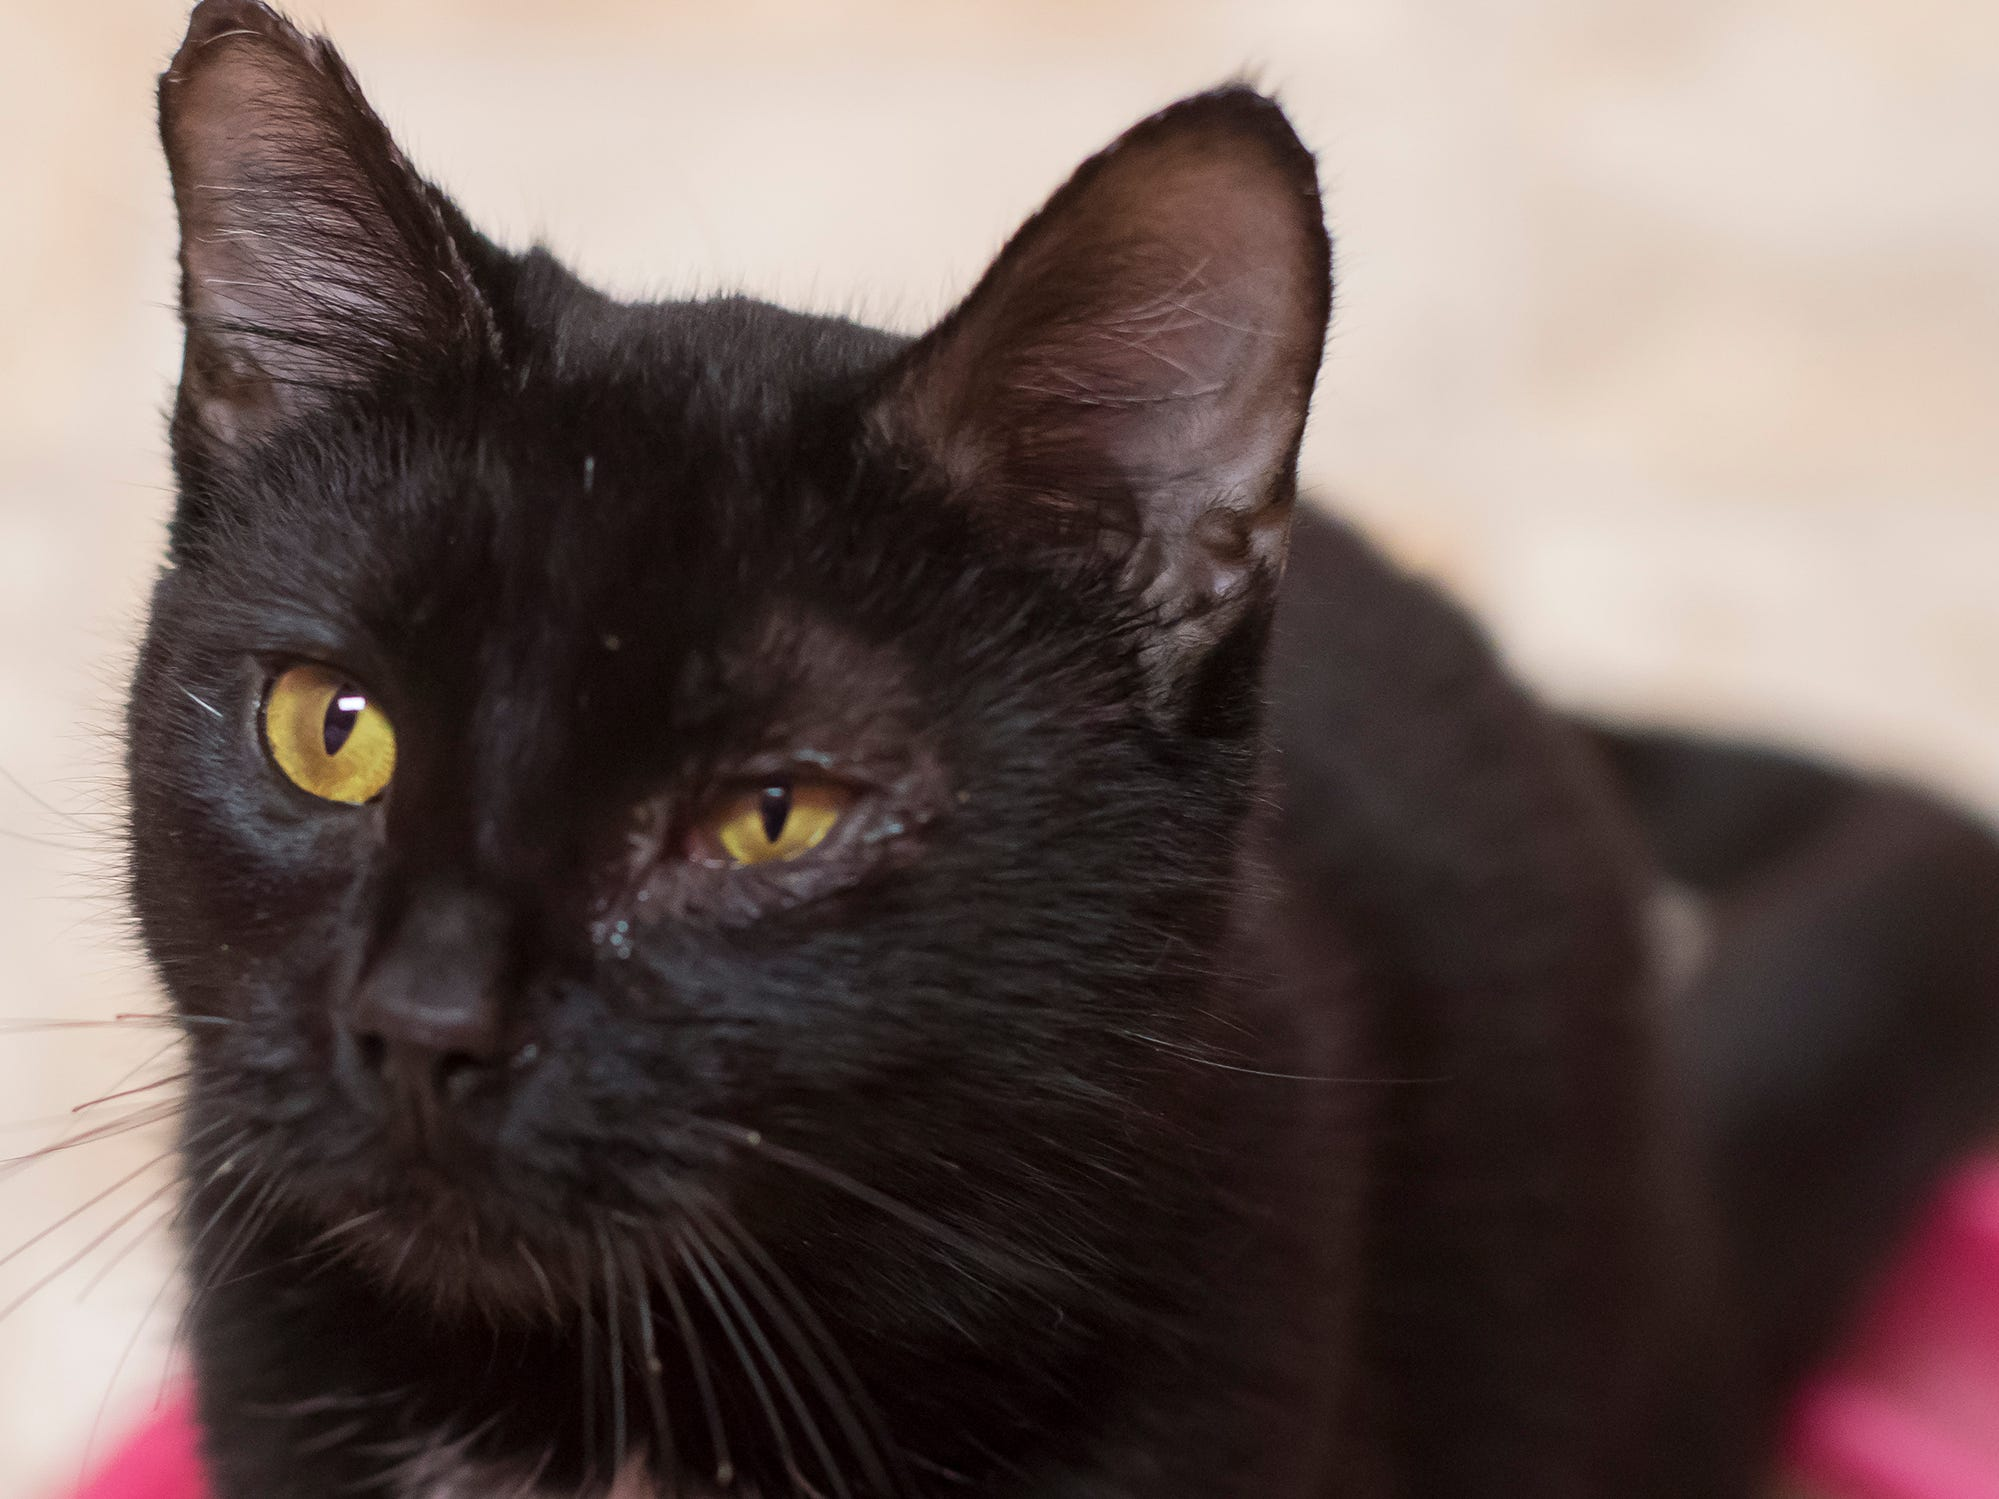 Knox is very friendly and loves meeting new people. The year-old survived a house fire, and the edges of her ears have some scarring, but she cuddles right up to newcomers.